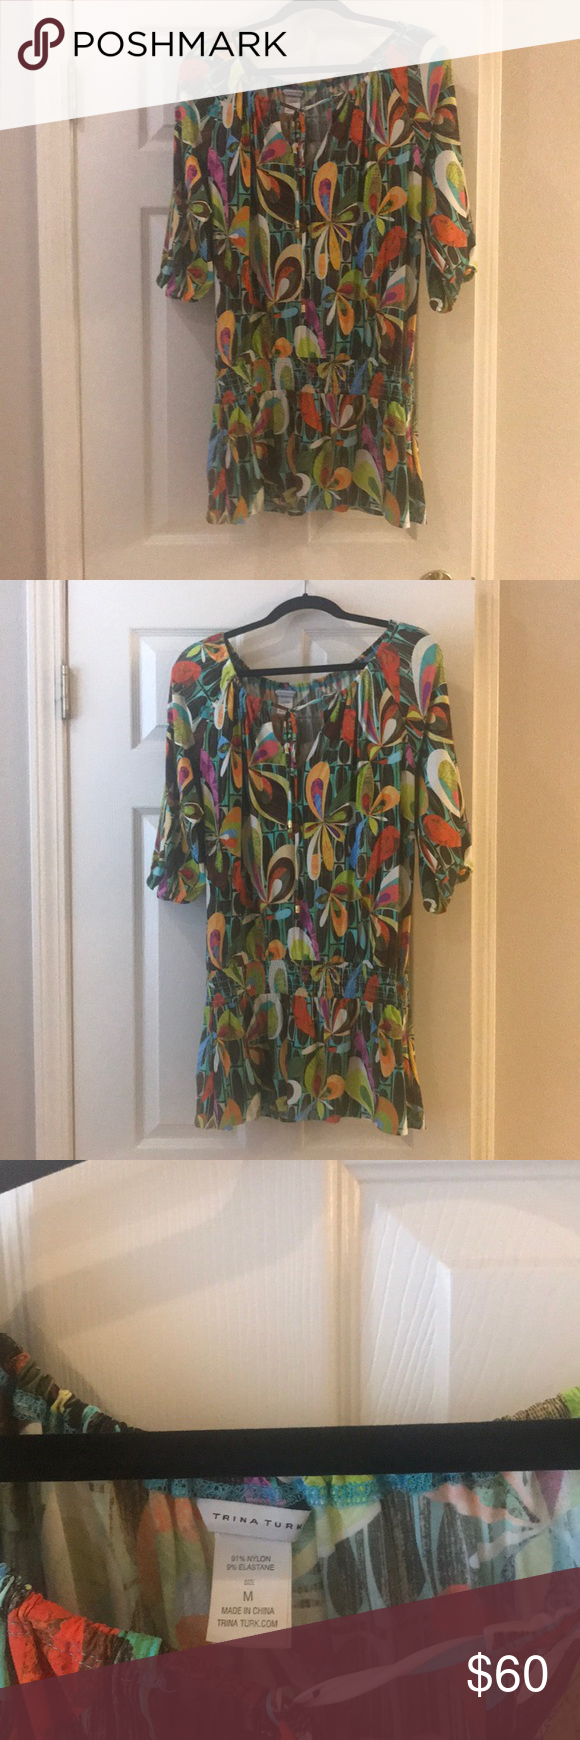 63c6e8b6ee Trina Turk coverup Fun multicolored swimsuit coverup dress. Lots of colors  to go with everything! Very comfortable! Trina Turk Swim Coverups